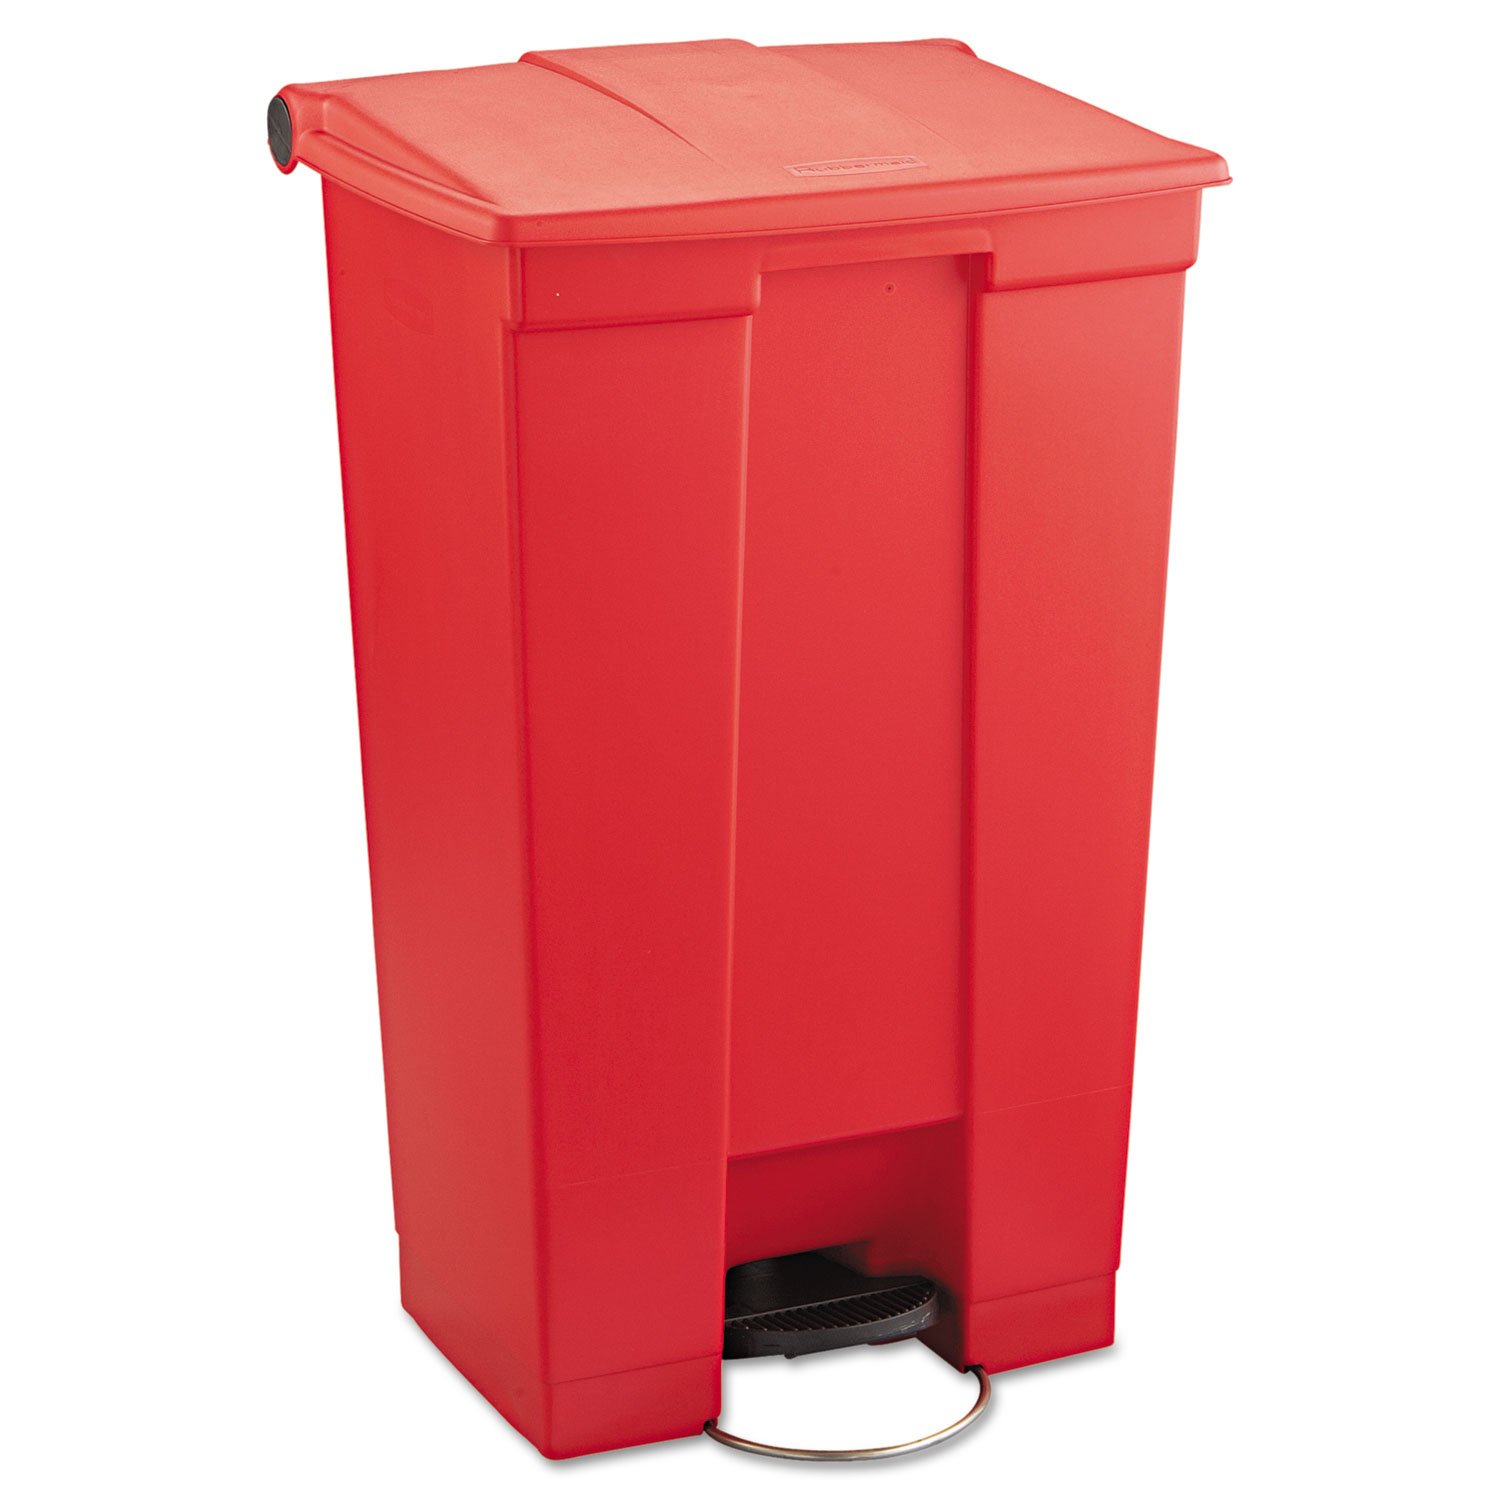 Rubbermaid Commercial Medical Waste Front Step-On Trash Can, 23 Gallon, Red, FG614600RED